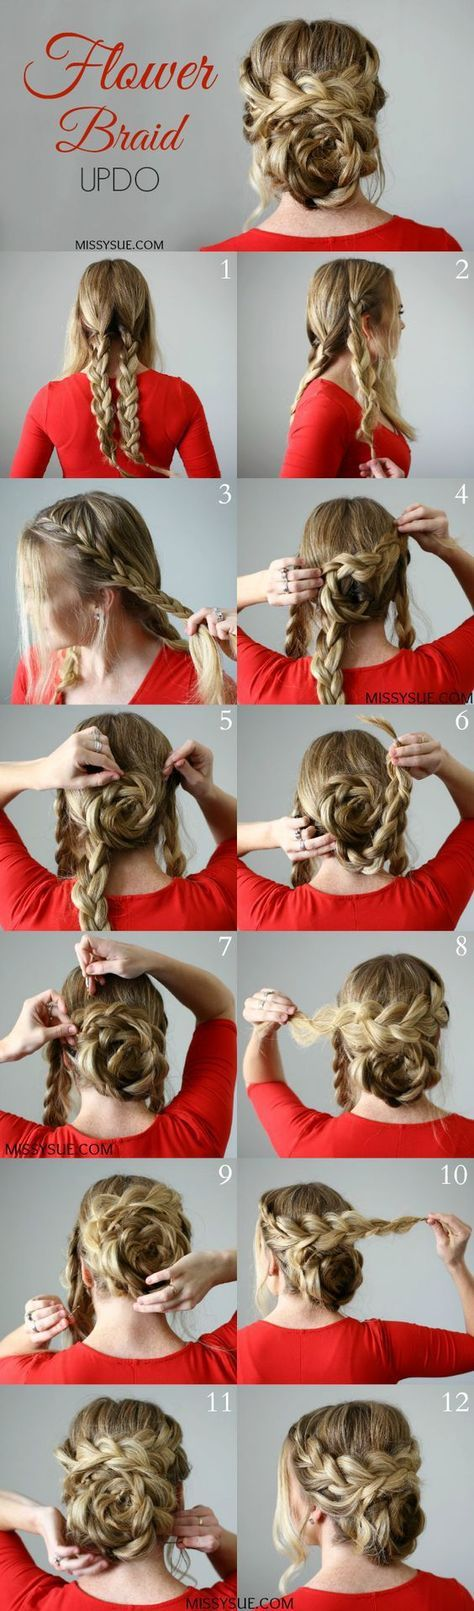 Cute Flower Braid Updo for Long Hair